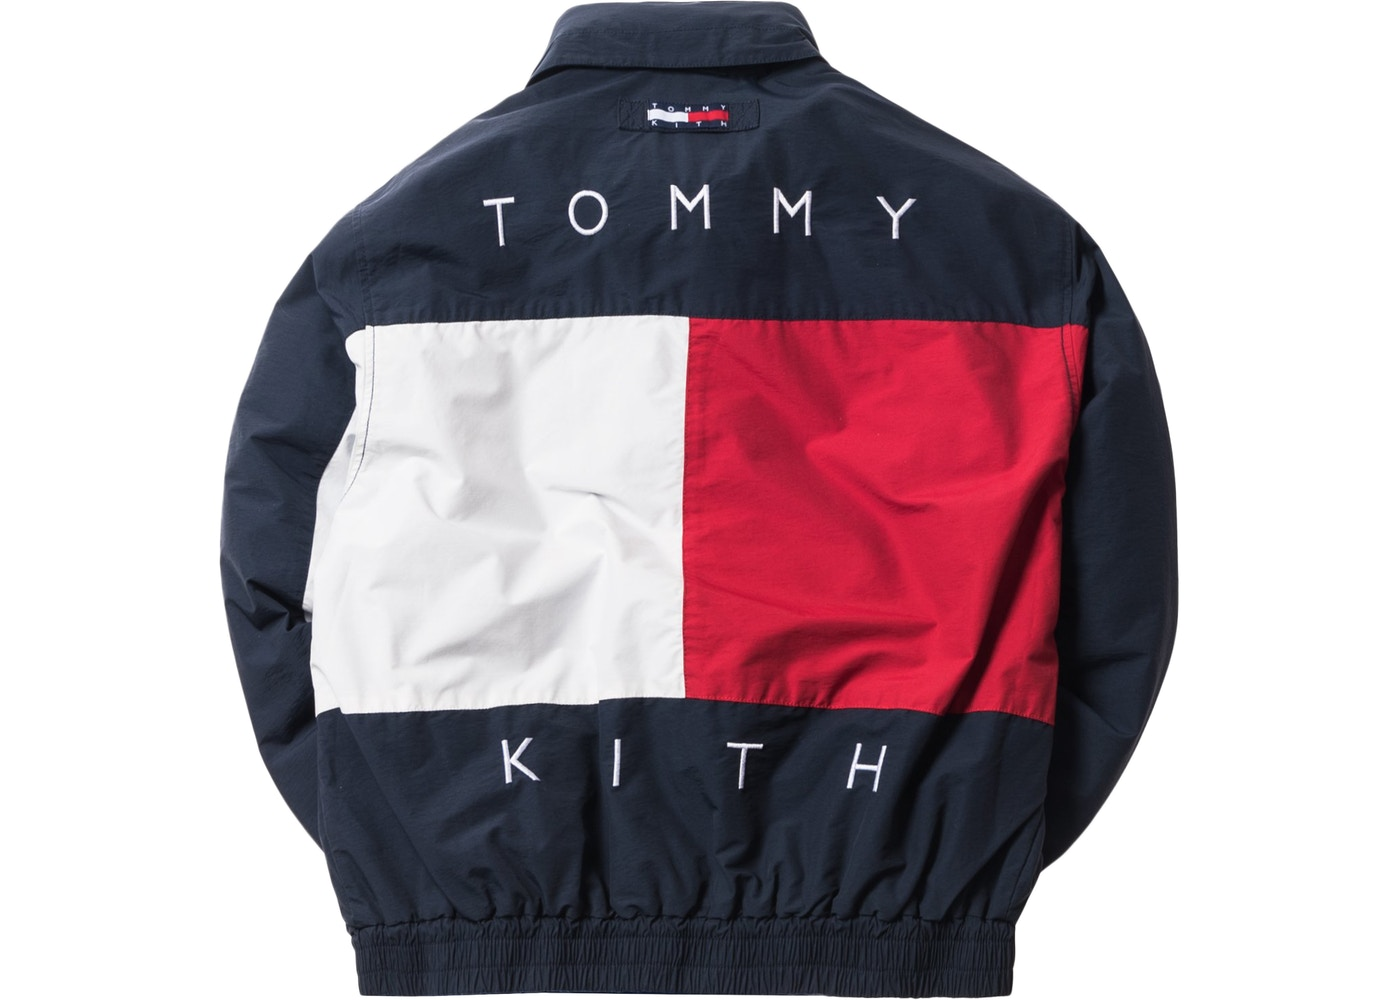 36ef68c2f3 Kith x Tommy Hilfiger Reversible Colorblack Jacket Navy/Blue